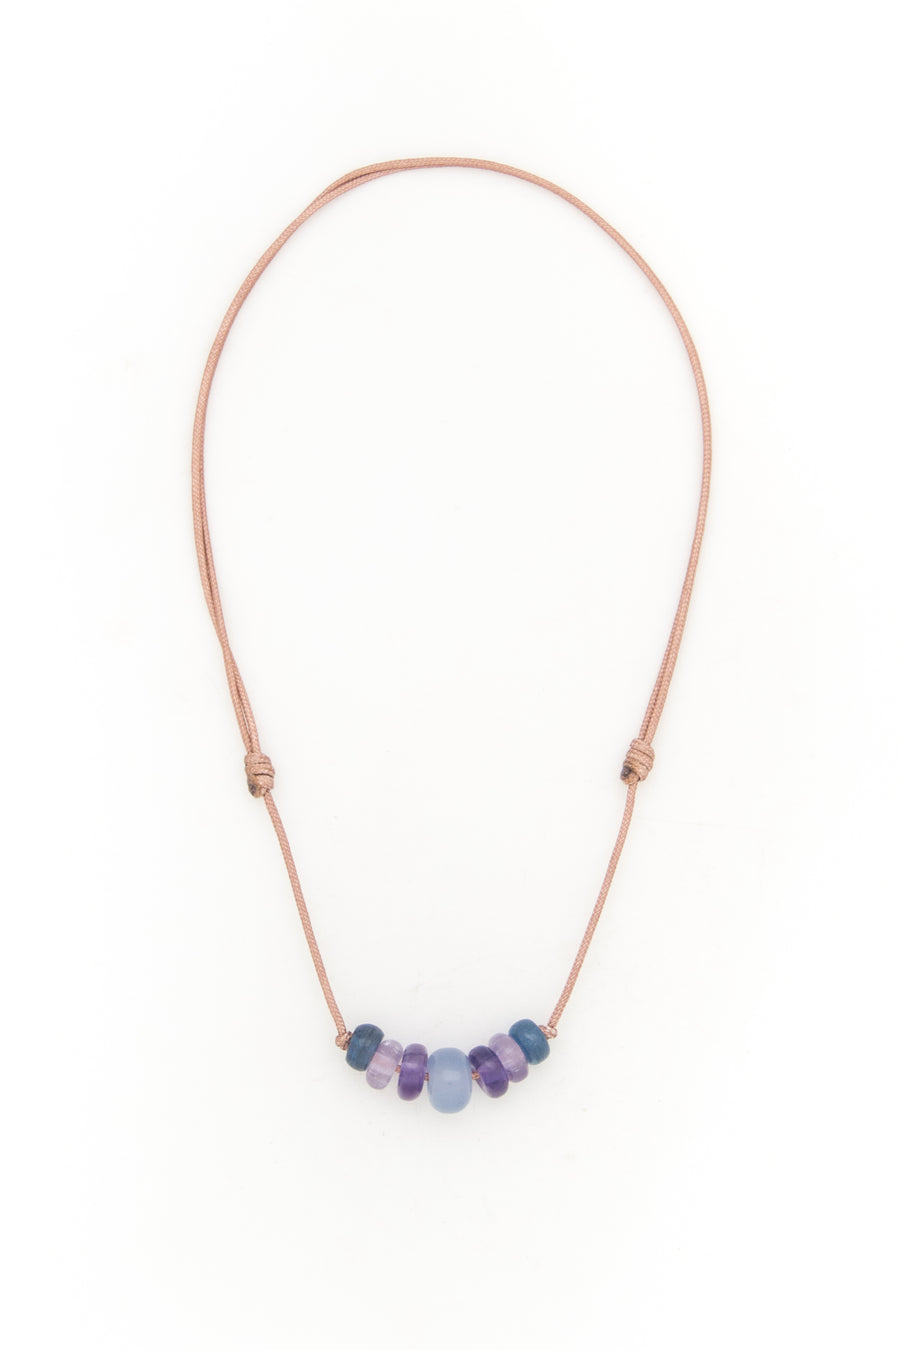 Blue Chalcedony & Friends Love Bead Necklace